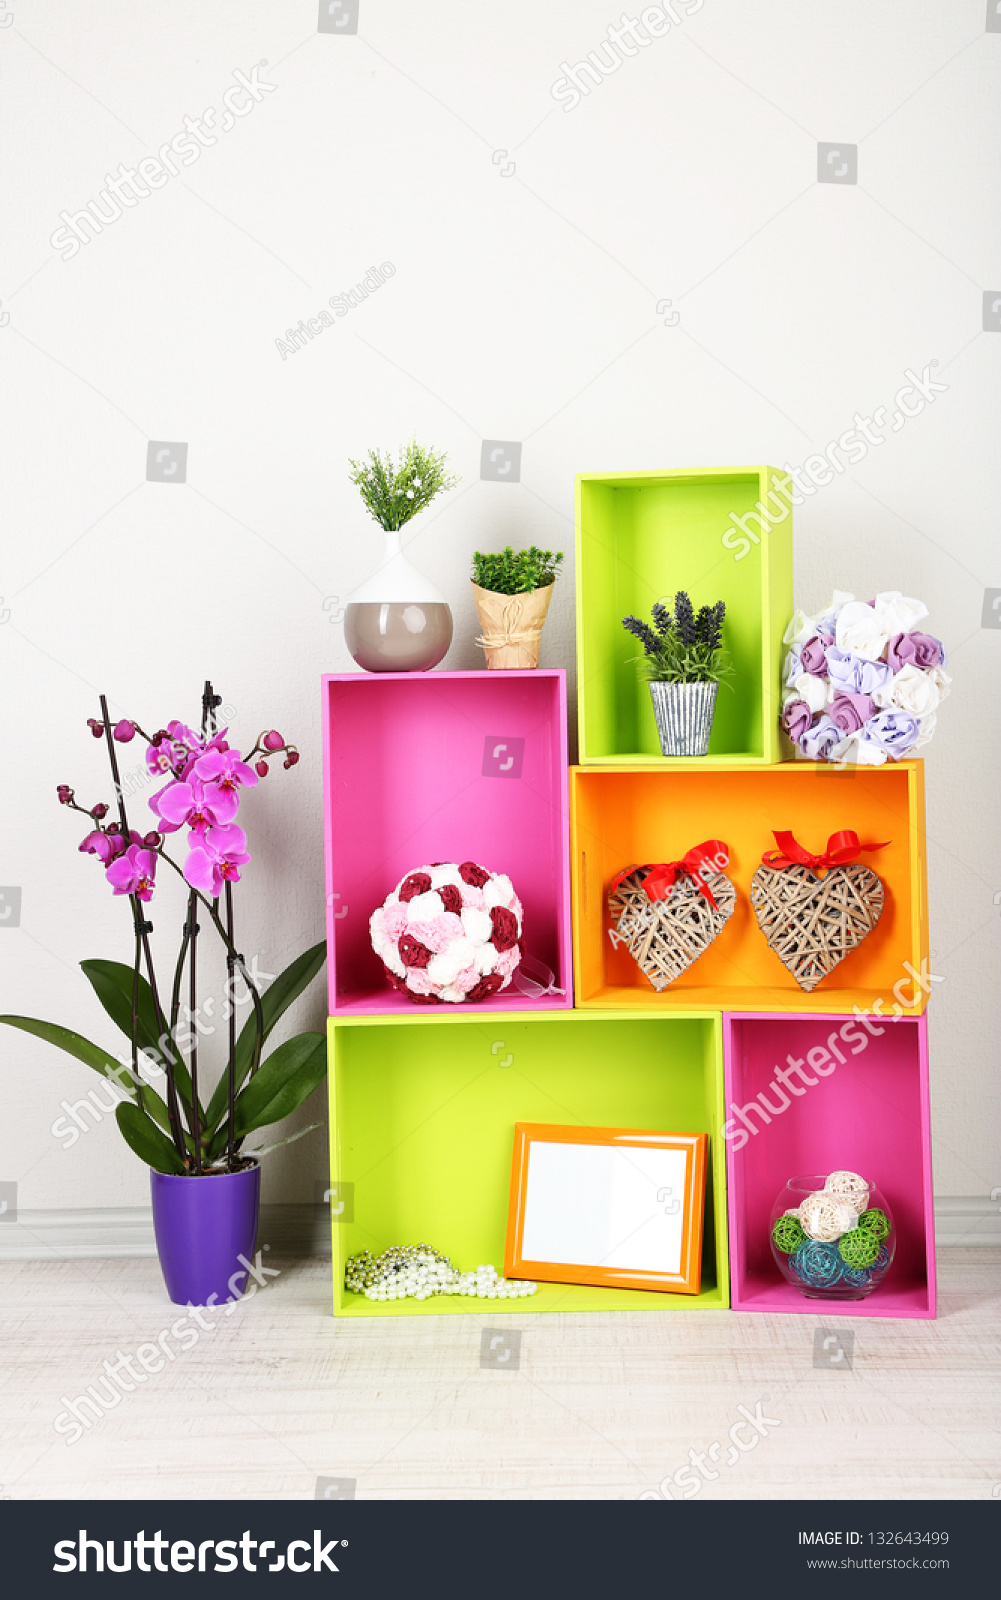 Beautiful colorful shelves with different home related objects stock photo 132643499 shutterstock - Beautiful photoshelves ...